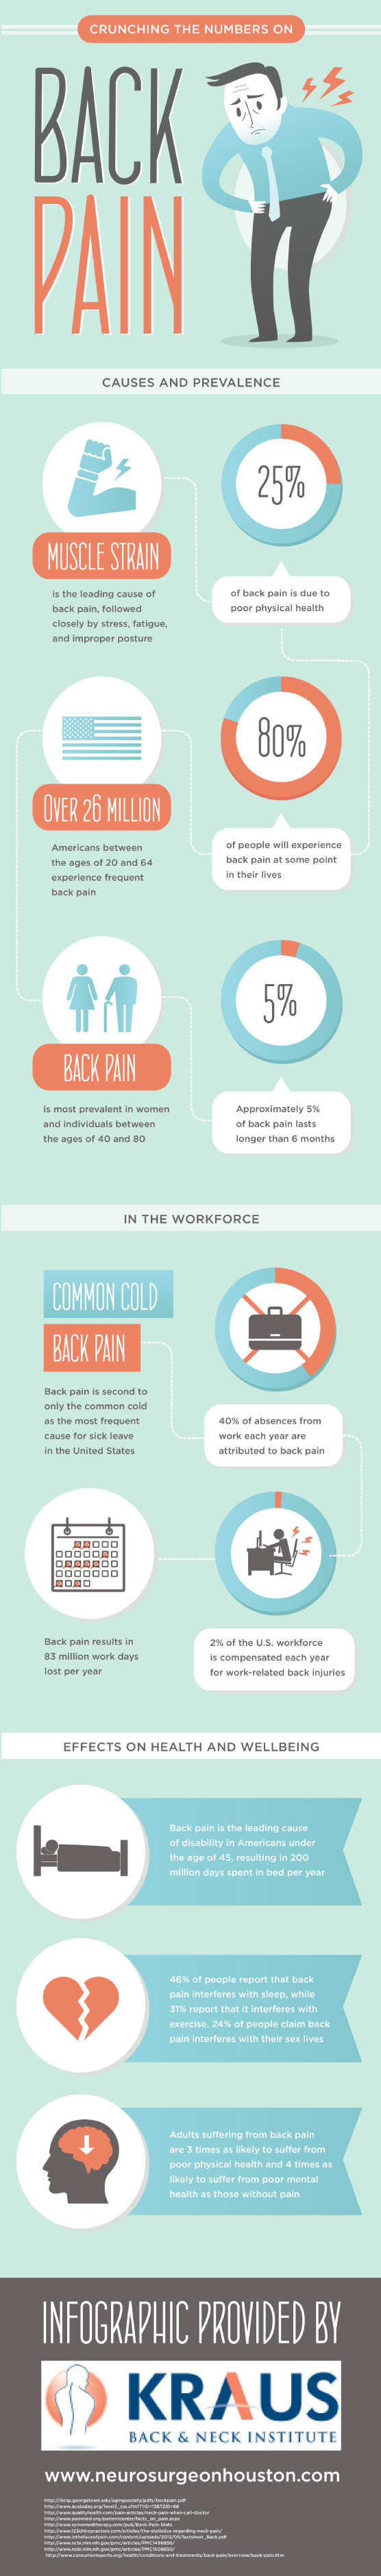 Back Pain - Crunching The Numbers